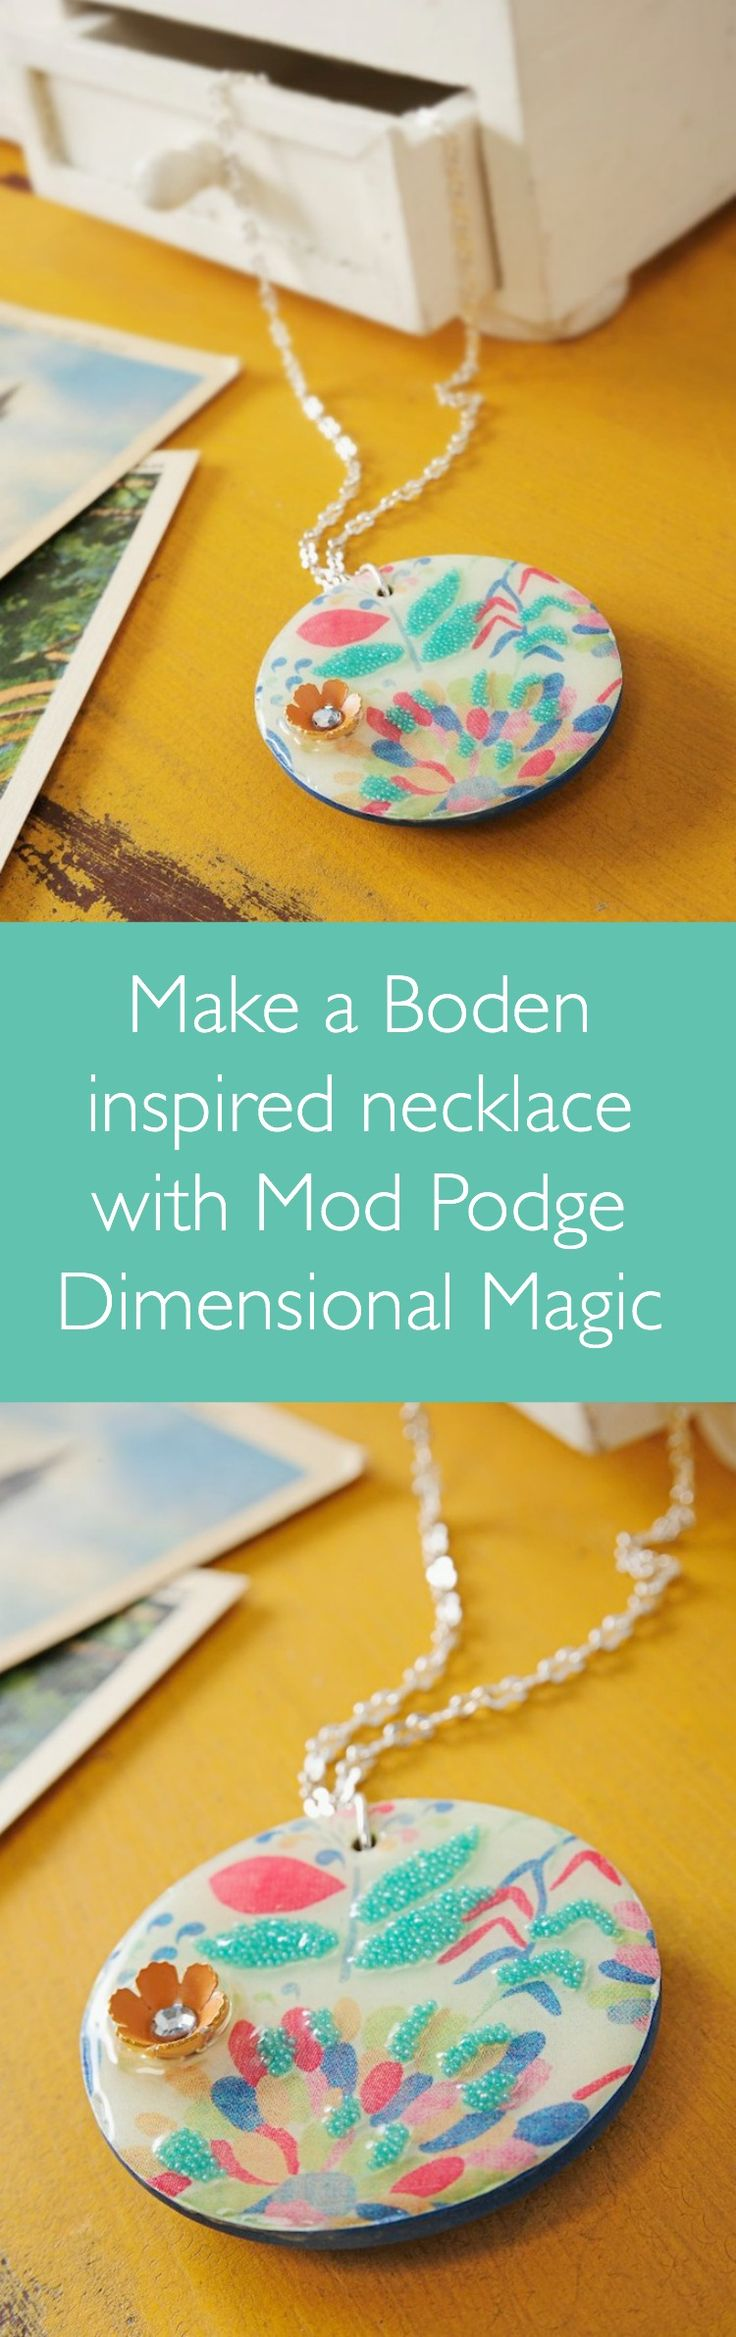 Create a unique Dimensional Magic pendant using any image that you choose - simply scan in and Mod Podge, then add DM and embellishments to the top.